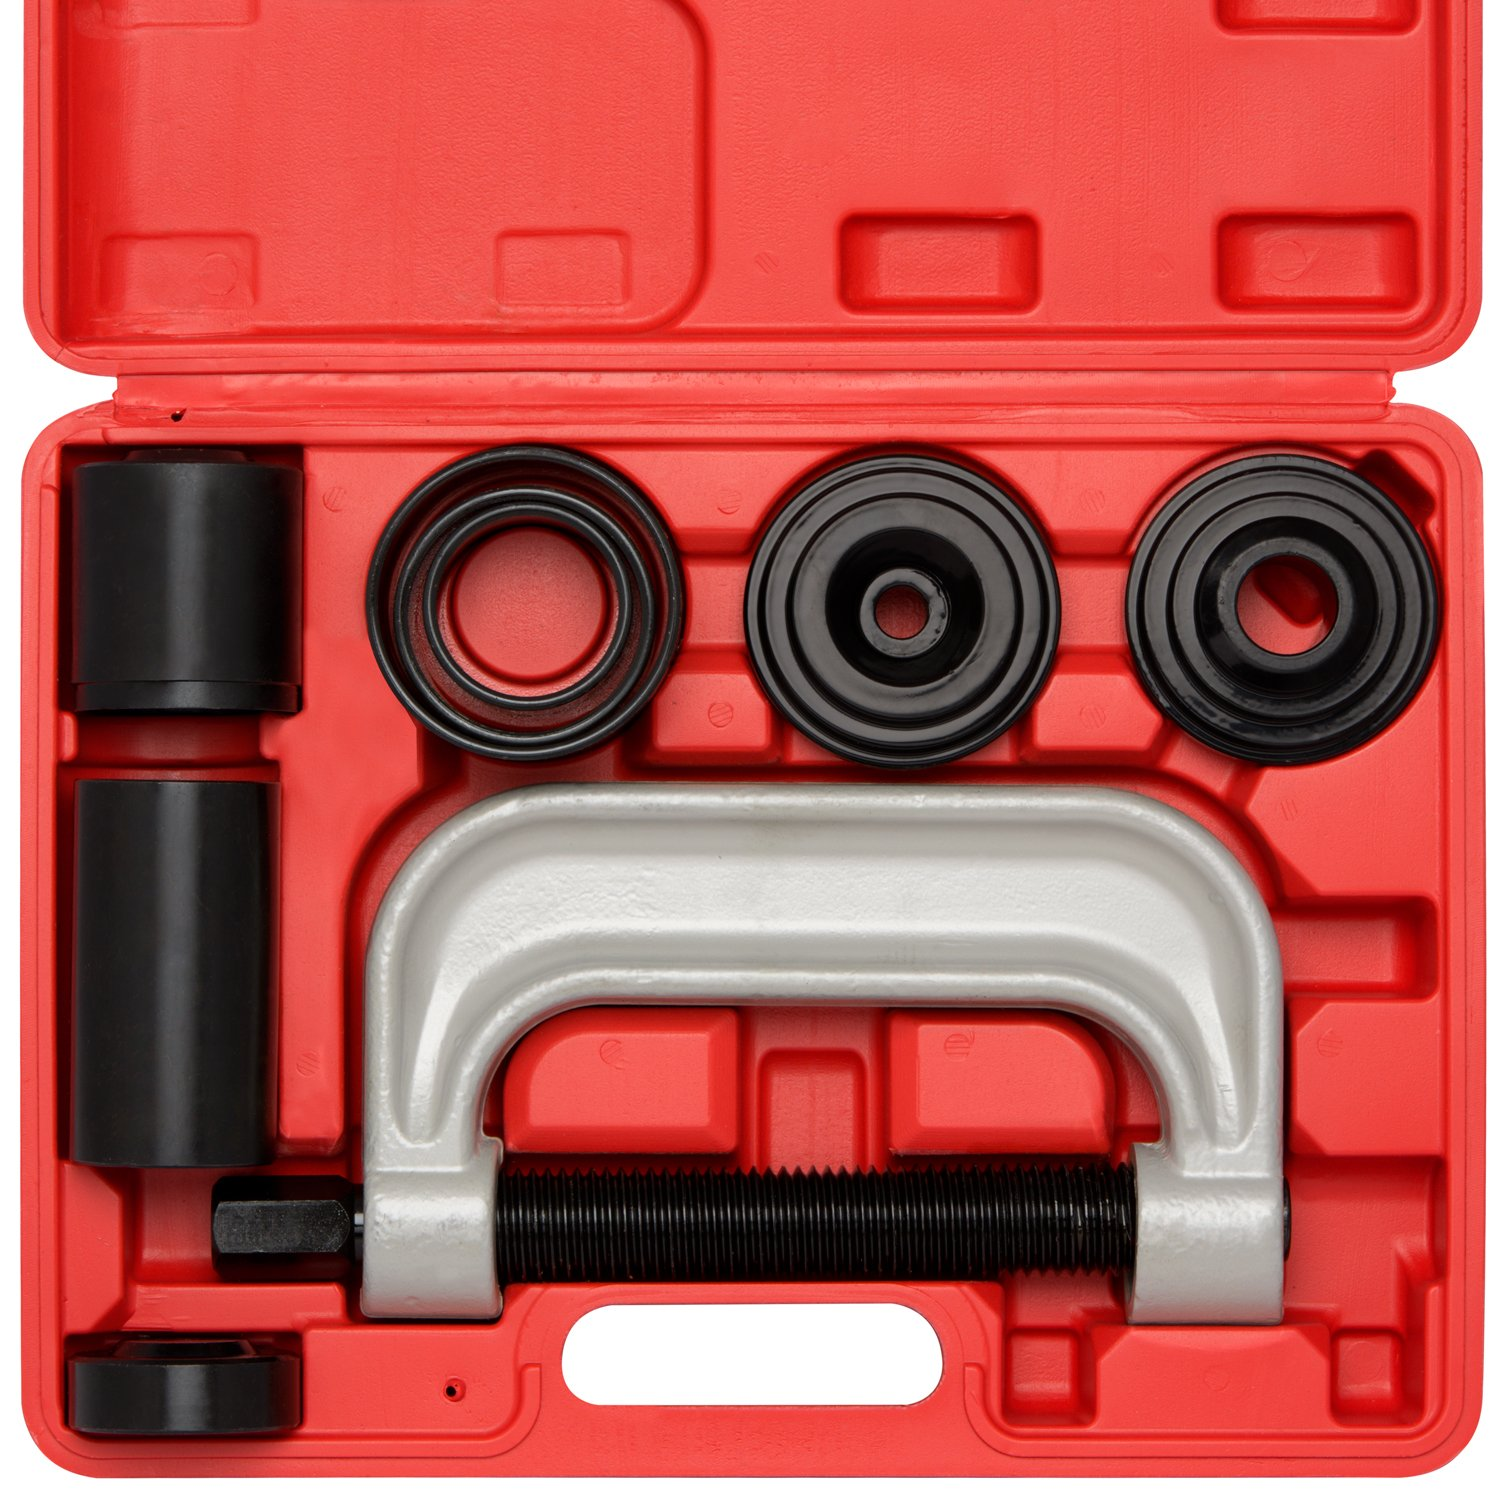 Neiko 20597A Automotive Ball Joint Service Tool Kit, Remove & Install for 2WD & 4WD, 10 Piece Set Ridgerock Tools Inc.